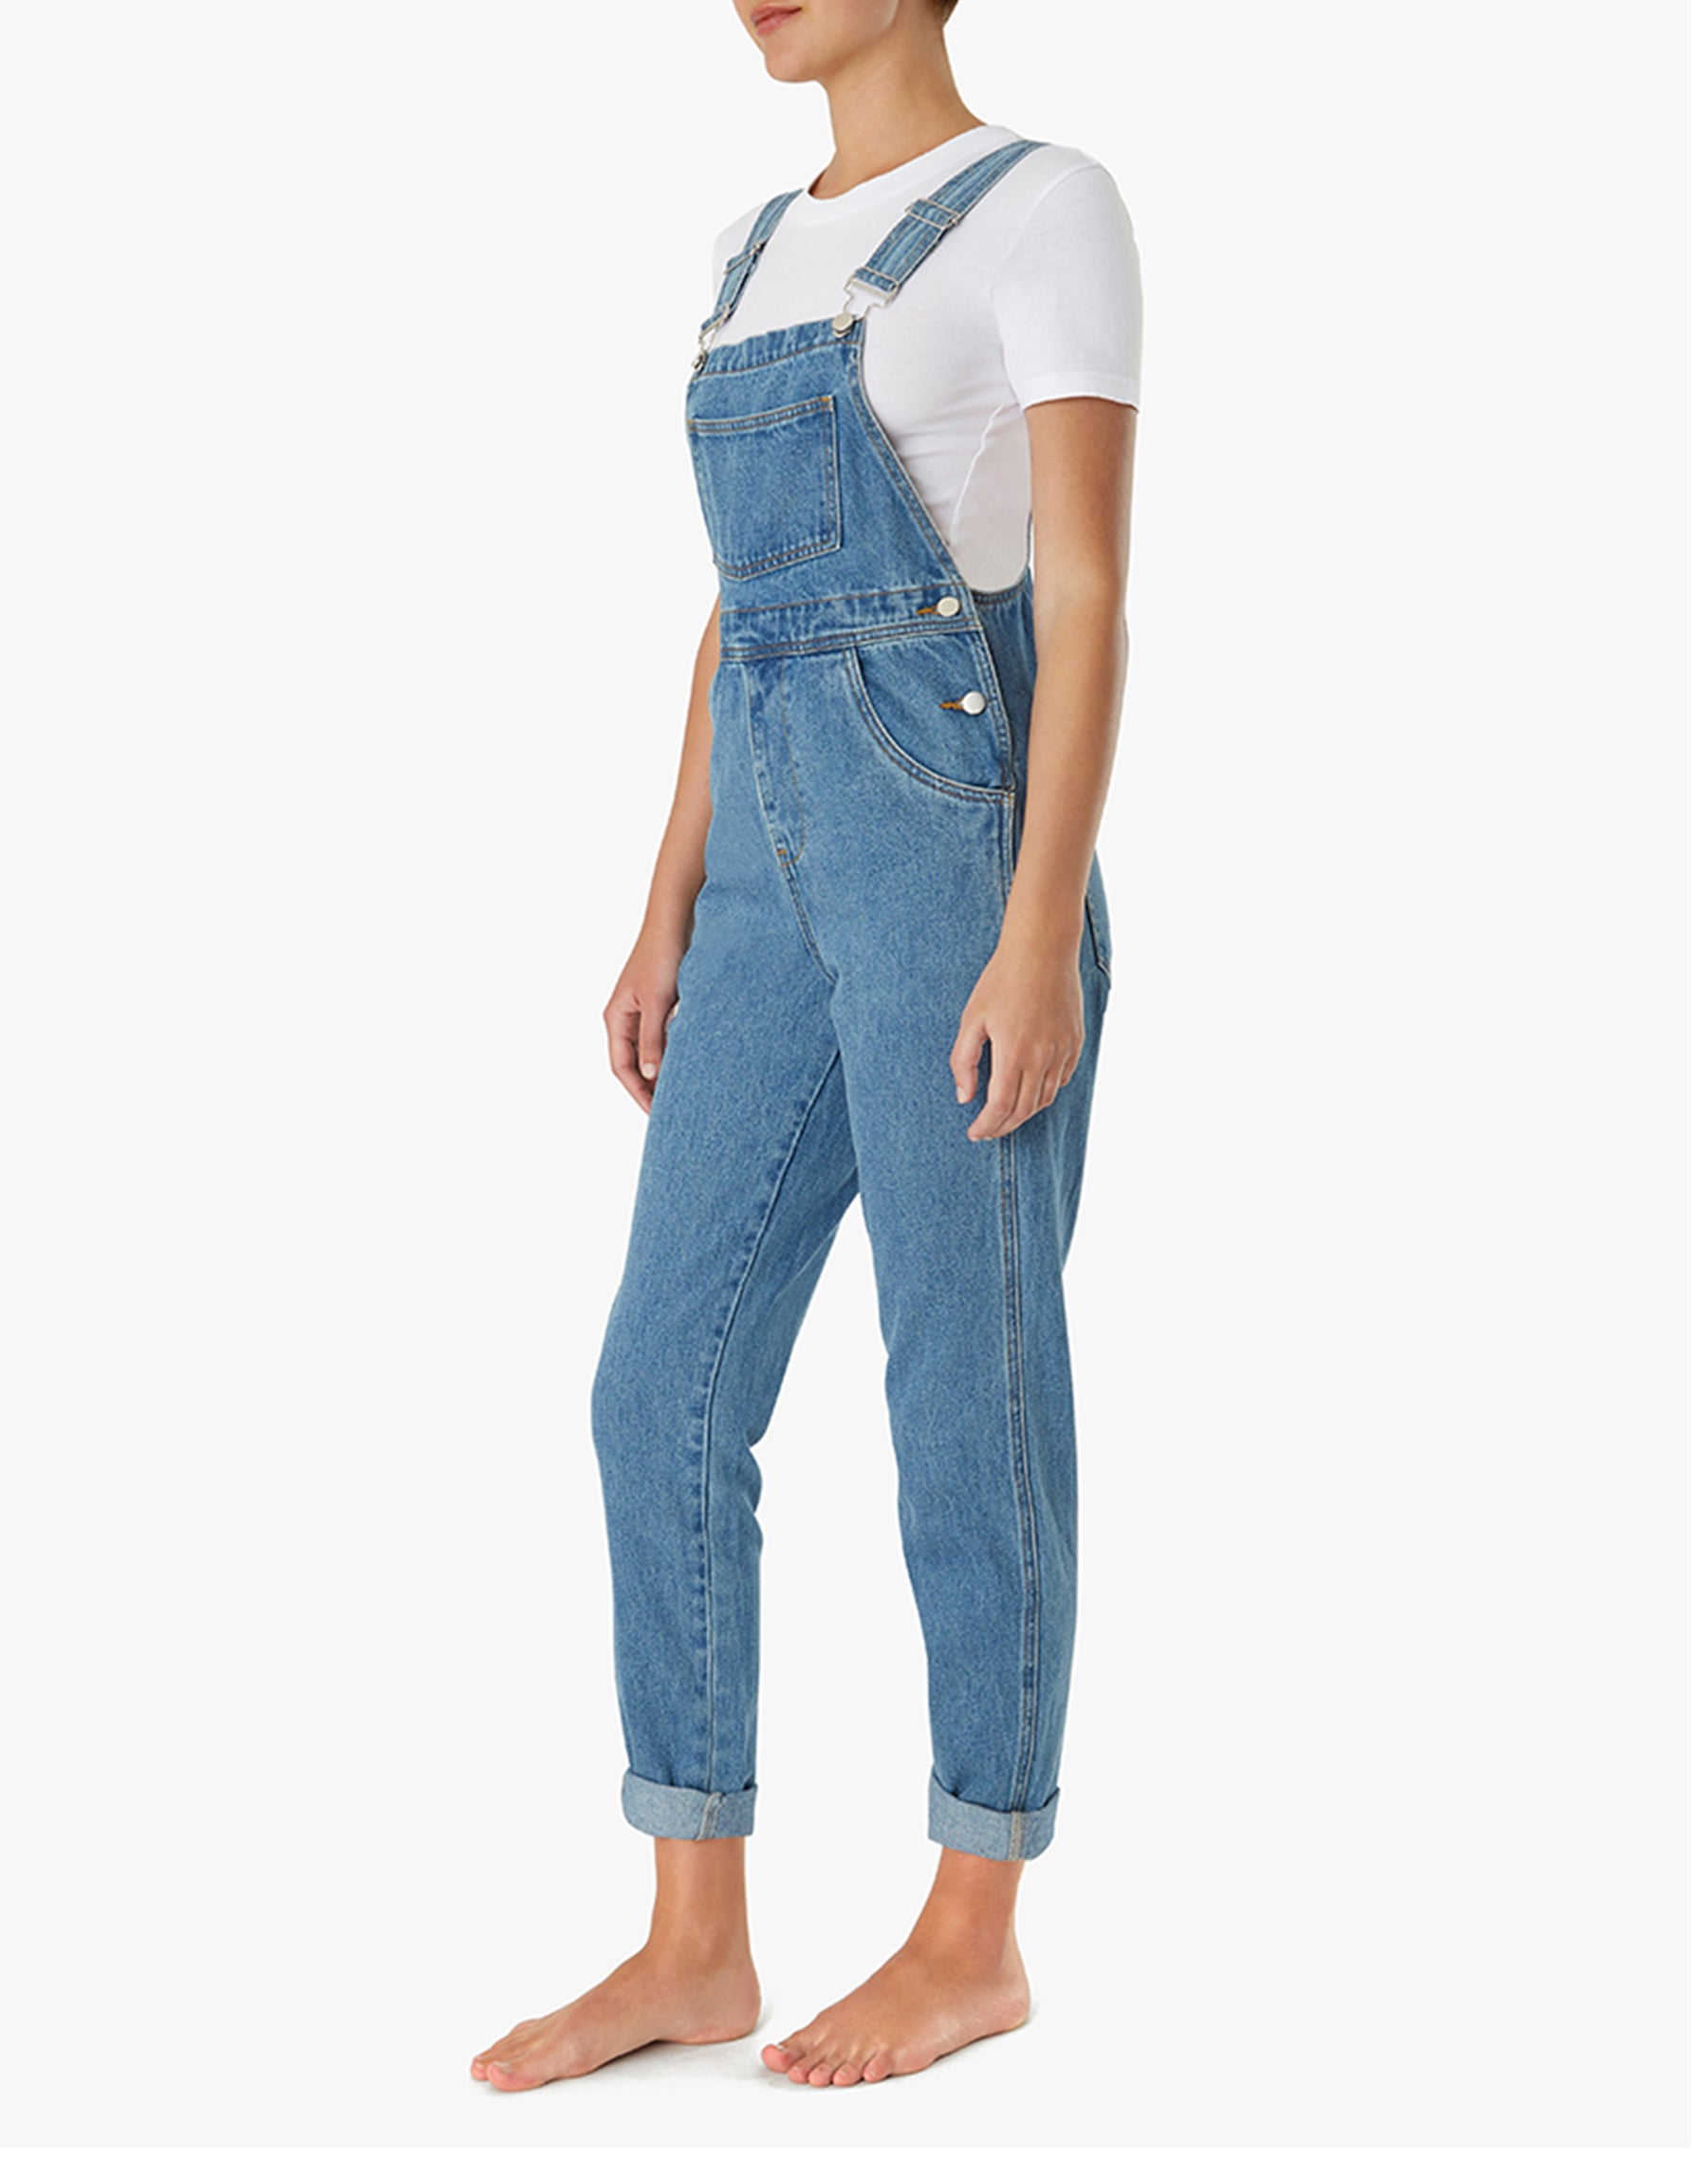 The BASIC DENIM Overalls in Light Wash | We Wore What